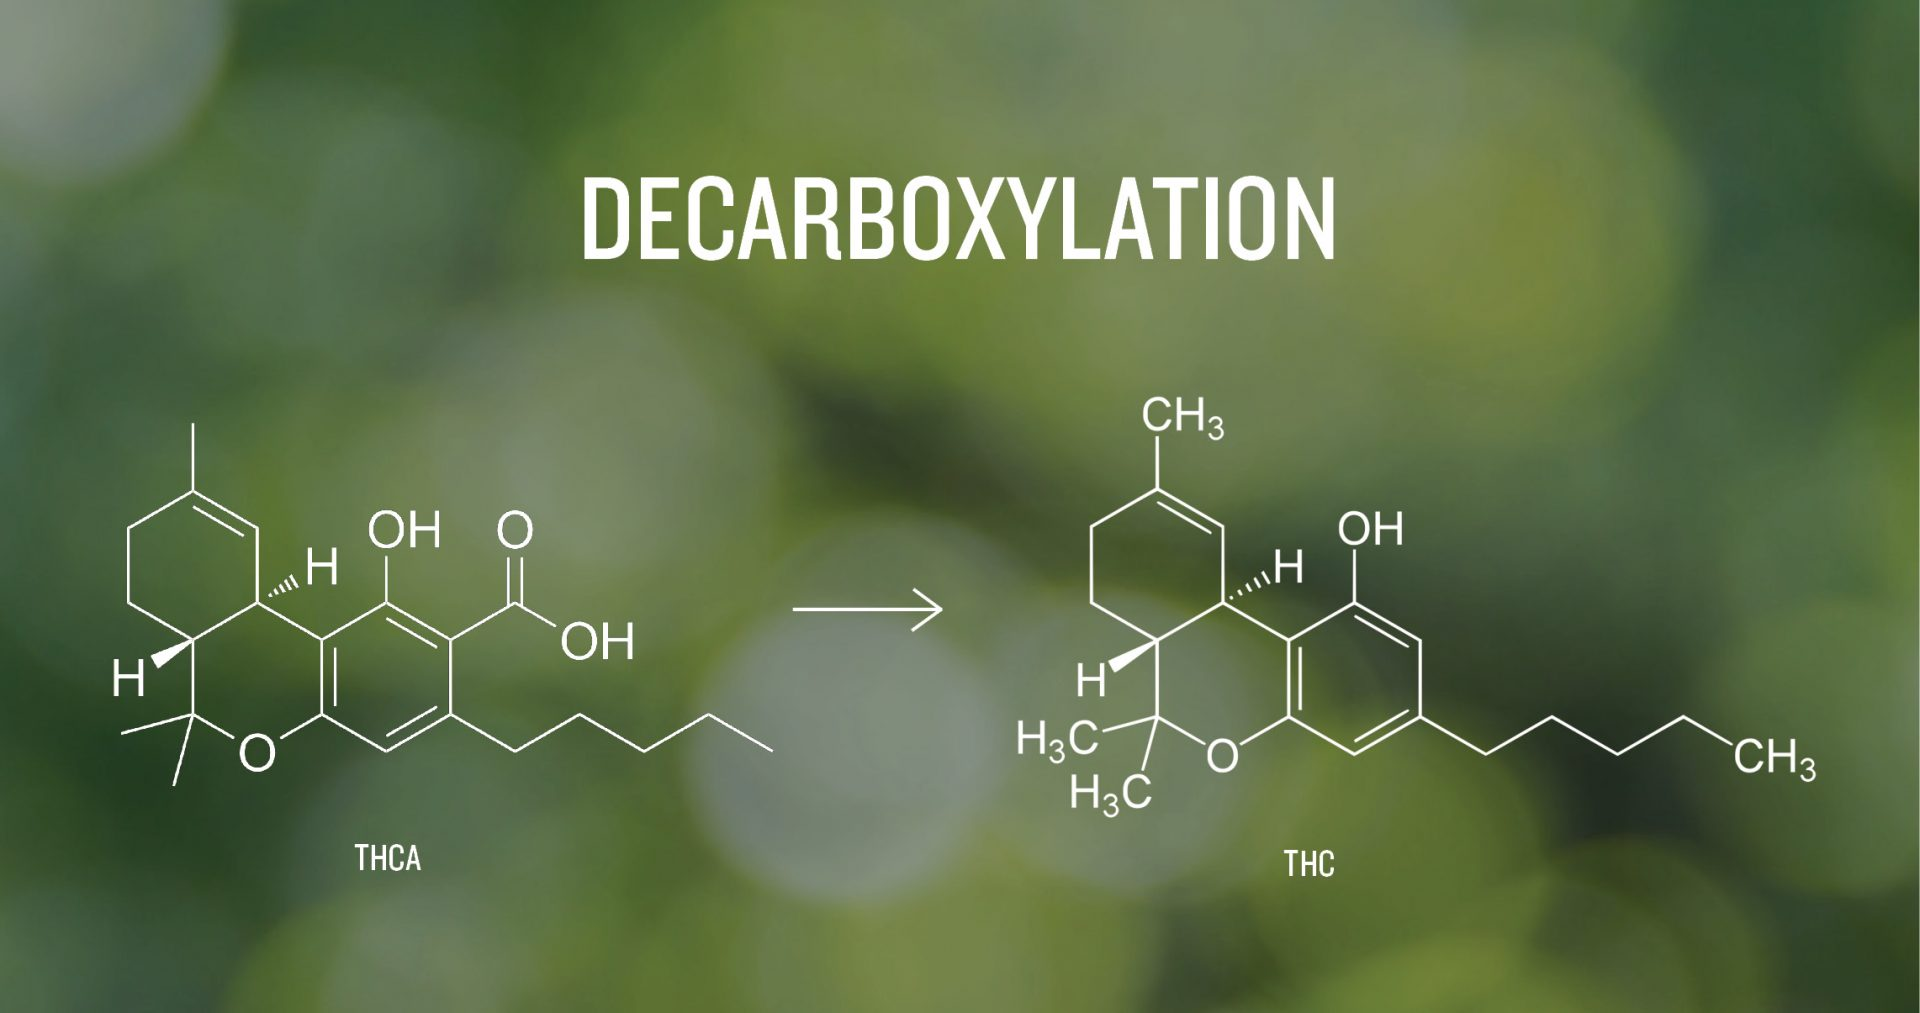 educational molecular diagram decarboxylation for how to make cbd oil